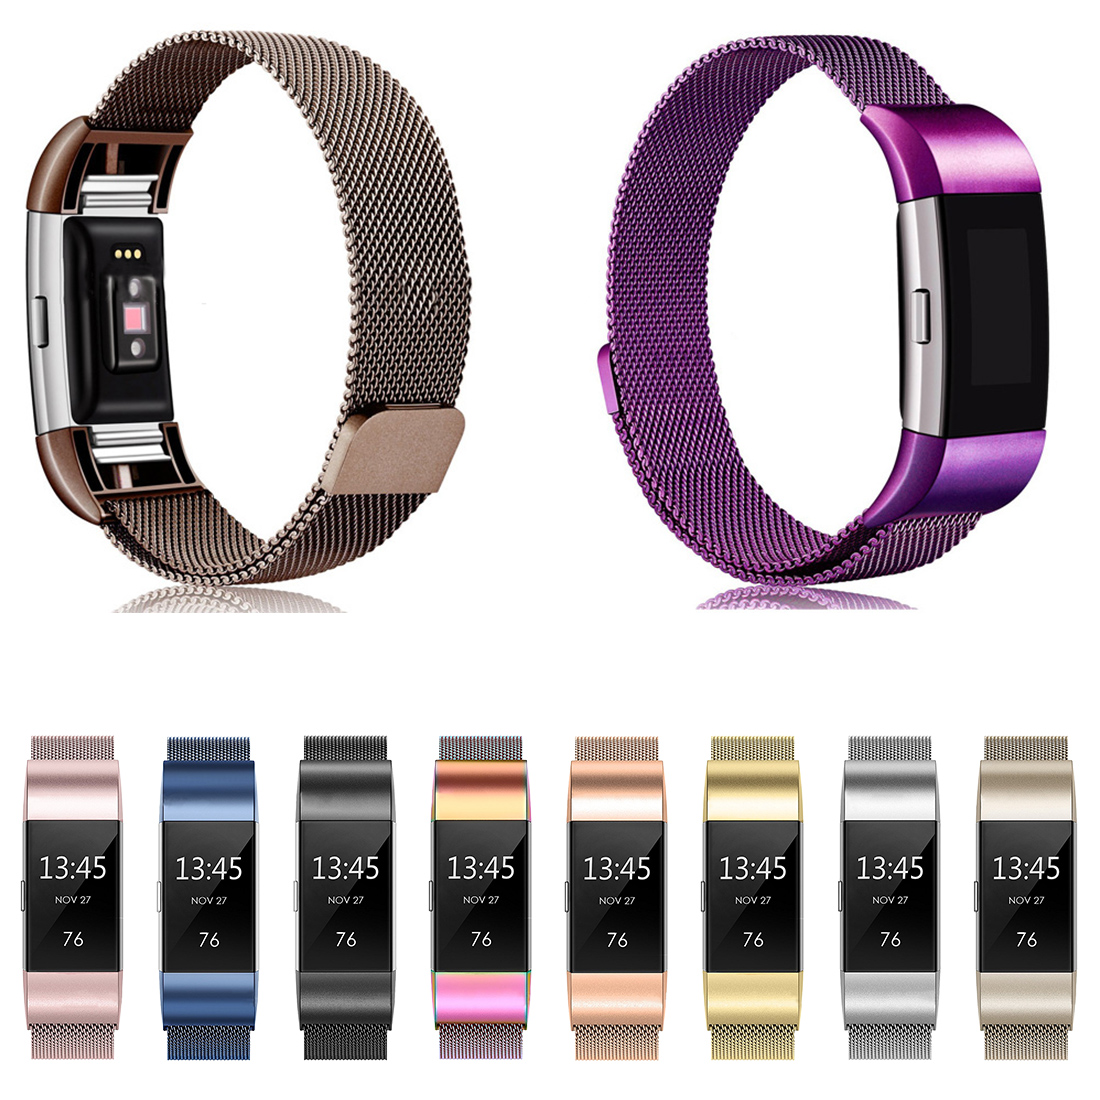 For Fitbit Charge 2 Hr Band Strap Replacement Wrist Bracelet Stainless Steel High Quality tfor Fit Bit Charge2 Smart Watch S LFor Fitbit Charge 2 Hr Band Strap Replacement Wrist Bracelet Stainless Steel High Quality tfor Fit Bit Charge2 Smart Watch S L